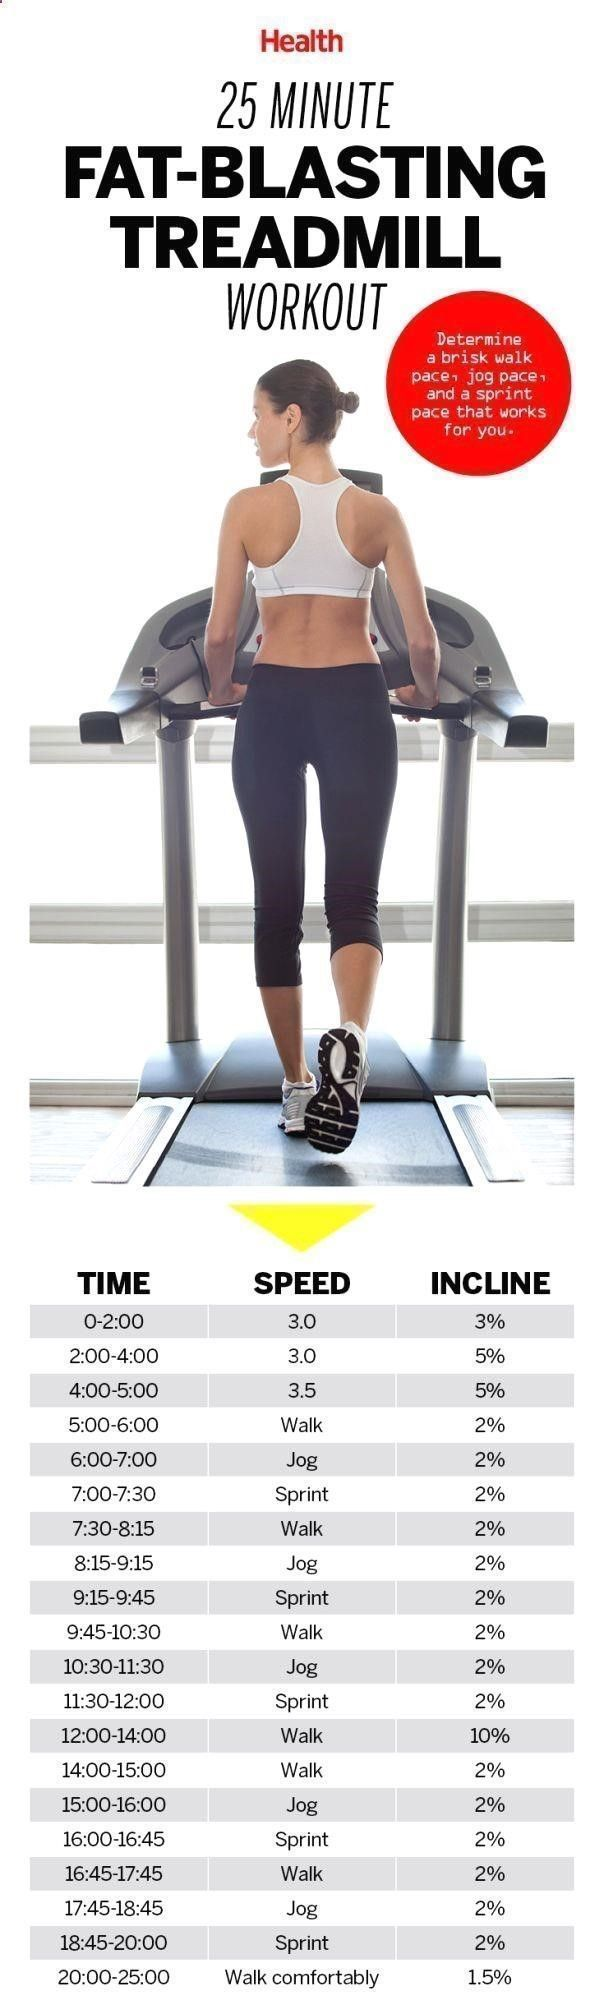 Belly Fat Workout - Fat Fast Shrinking Signal Diet-Recipes - This 25-minute fat-b This 25-minute fat-blasting treadmill workout is actually fun! Lose weight and tone up with this super fast and easy routine. - Do This One Unusual 10-Minute Trick Before Work To Melt Away 15 Pounds of Belly Fat #howcanilose15poundsfast #lose15poundsfastandeasy Do This One Unusual 10-Minute Trick Before Work To Melt Away 15+ Pounds of Belly Fat #treadmills #lose15poundsfat